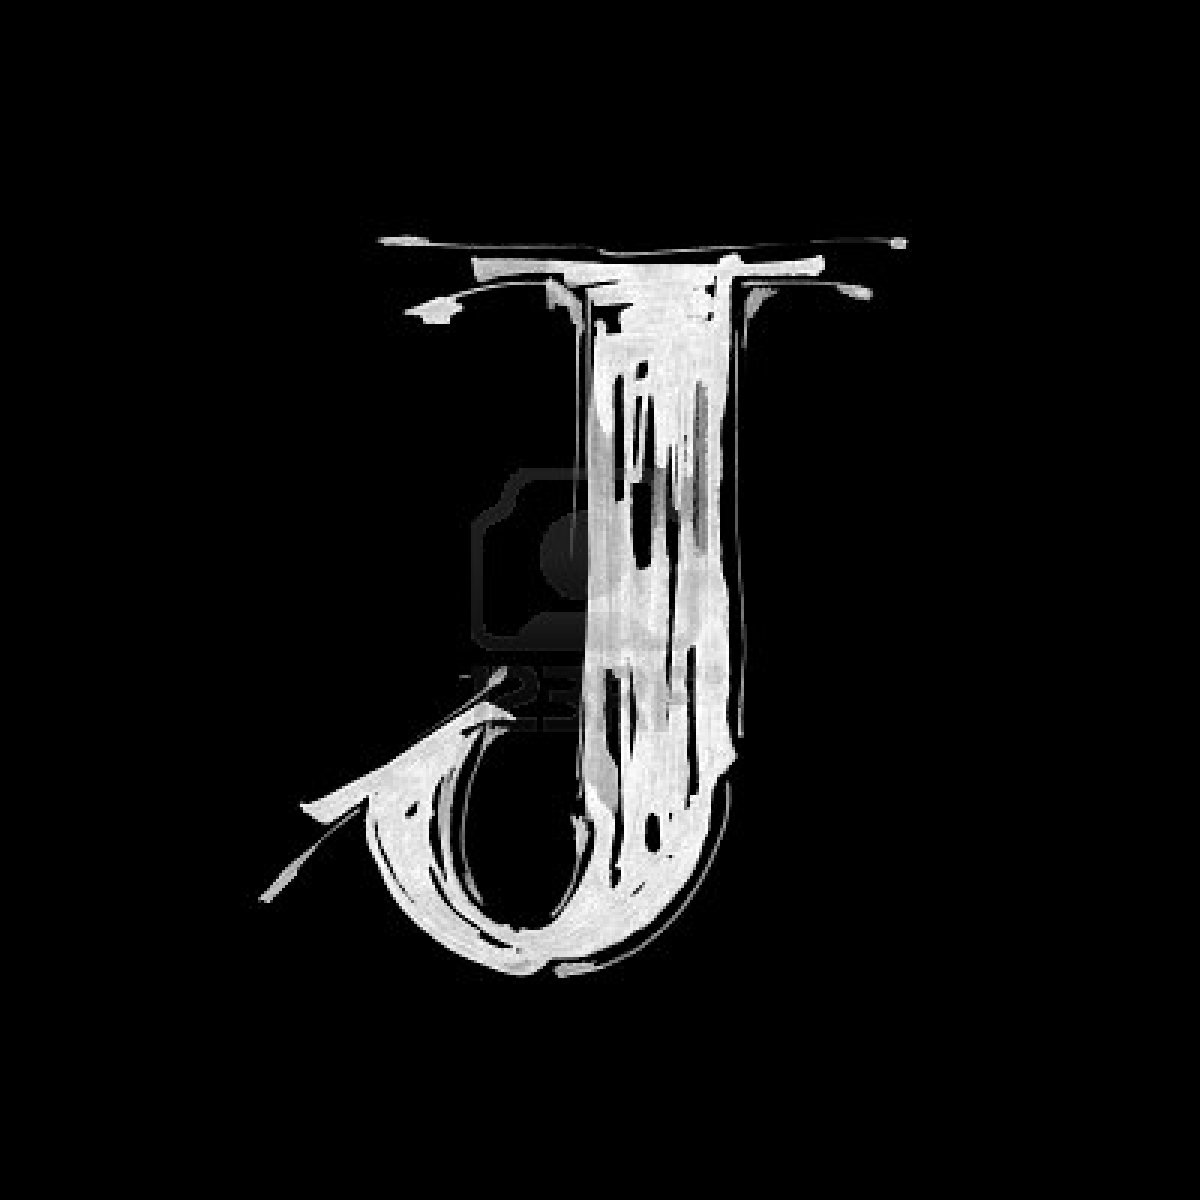 J-Alphabet wallpapers for mobile phone -mobile wallpaper - daily mobile 4 all